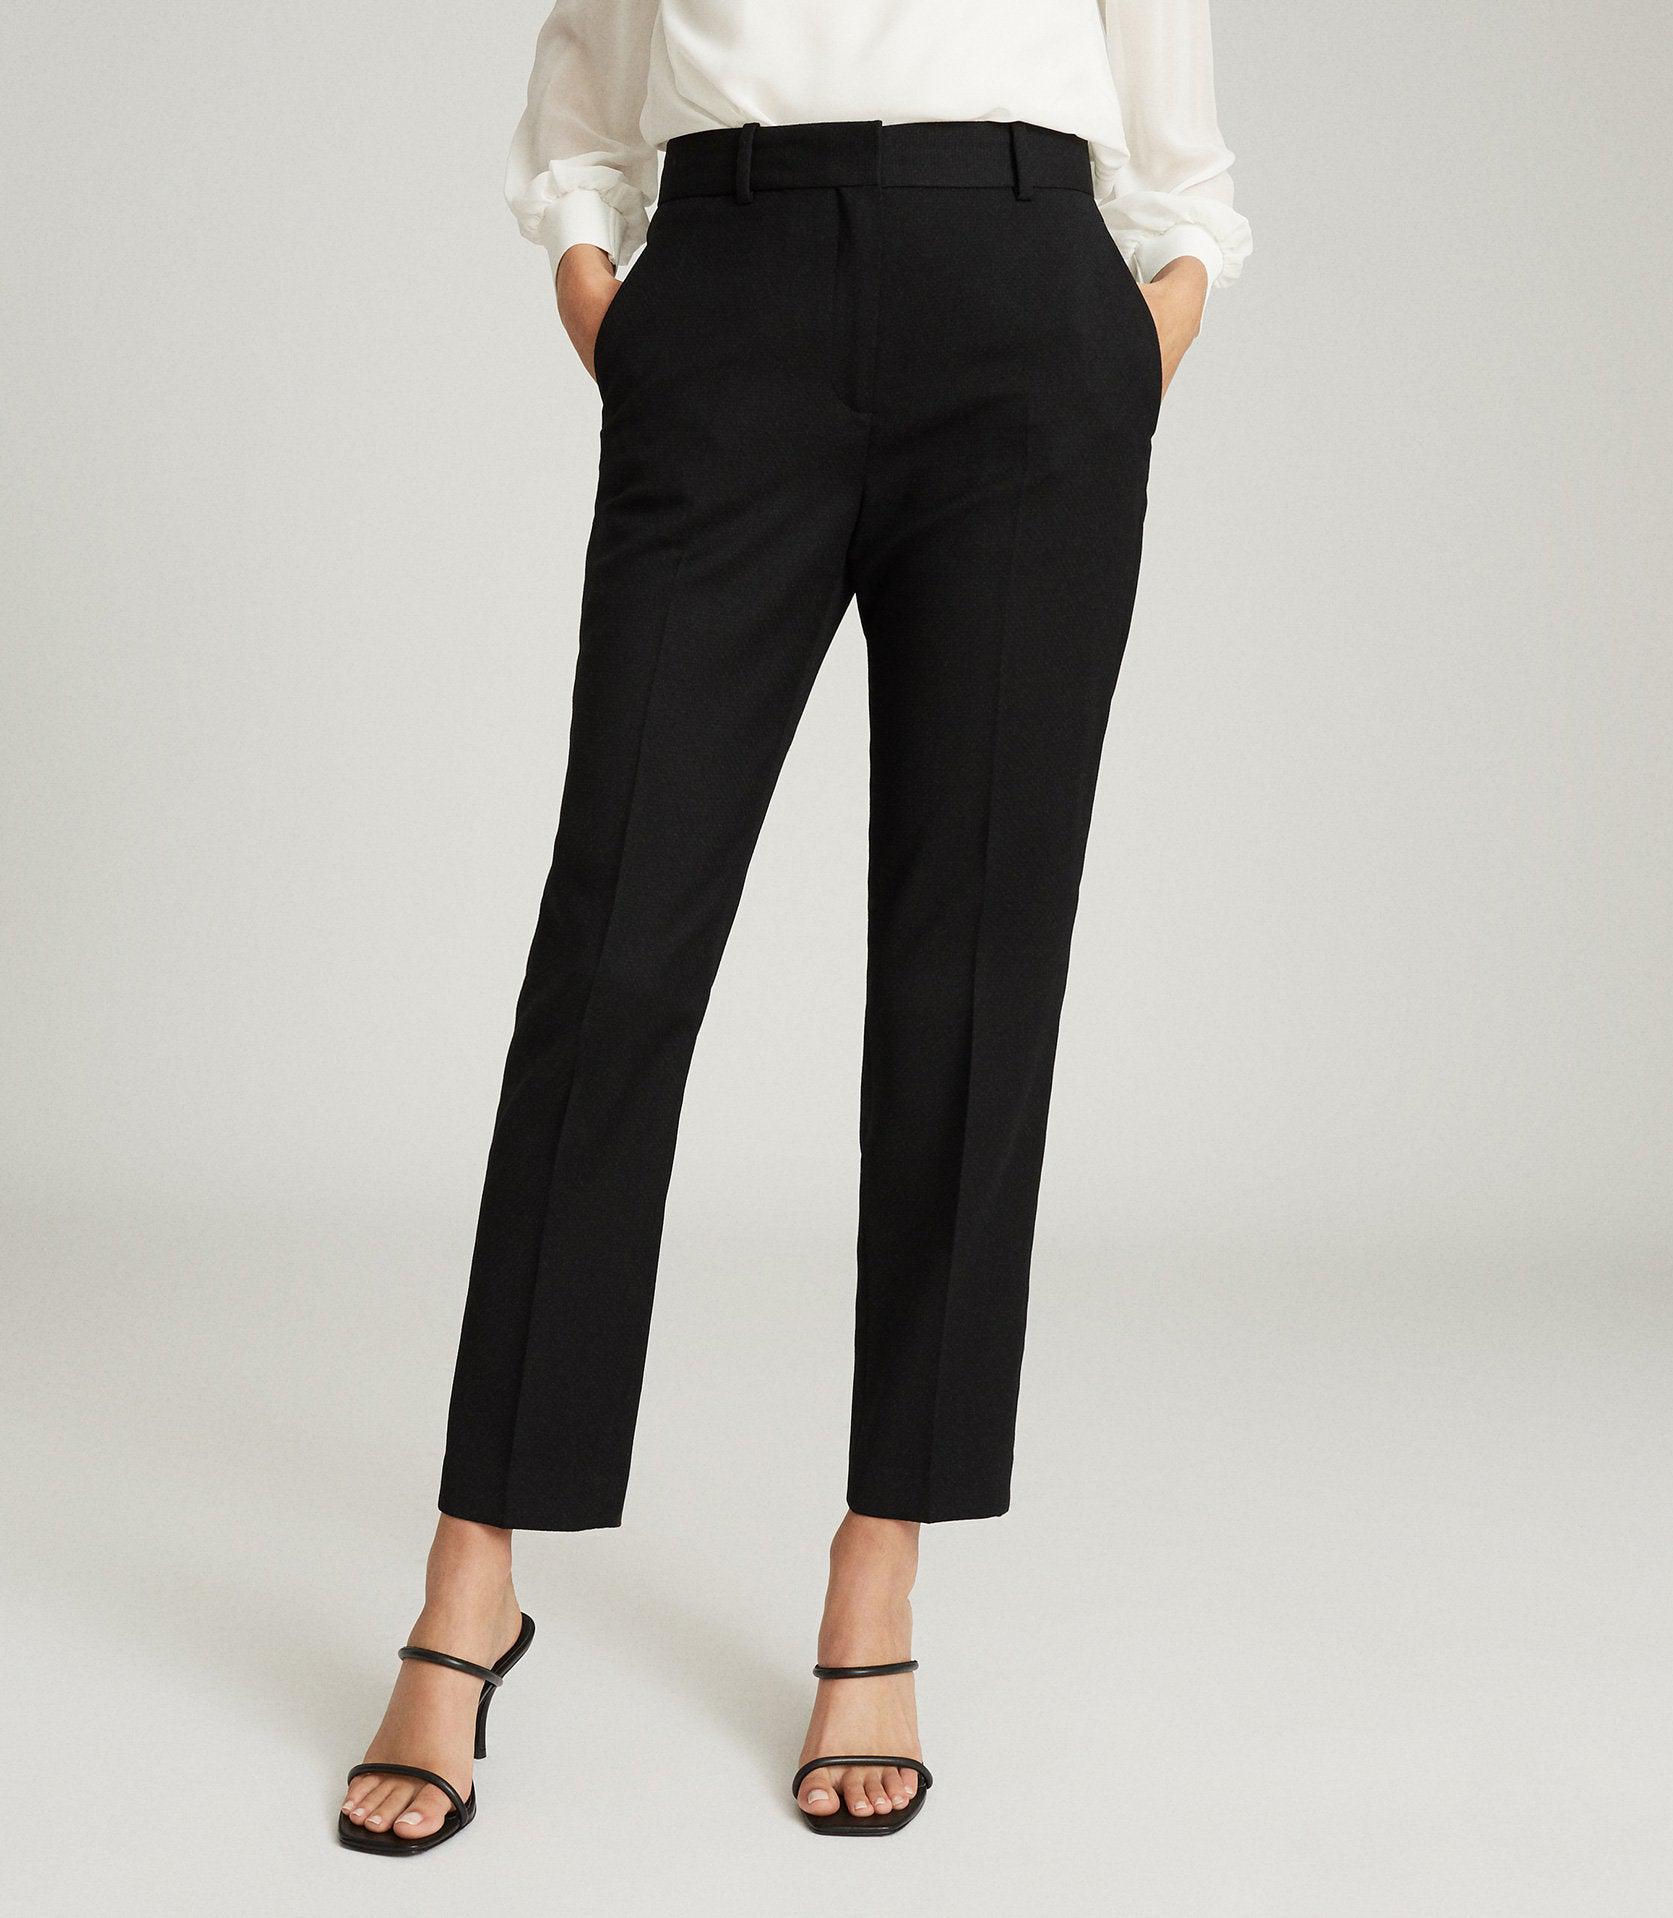 HAYES - SLIM FIT TAILORED PANTS 1